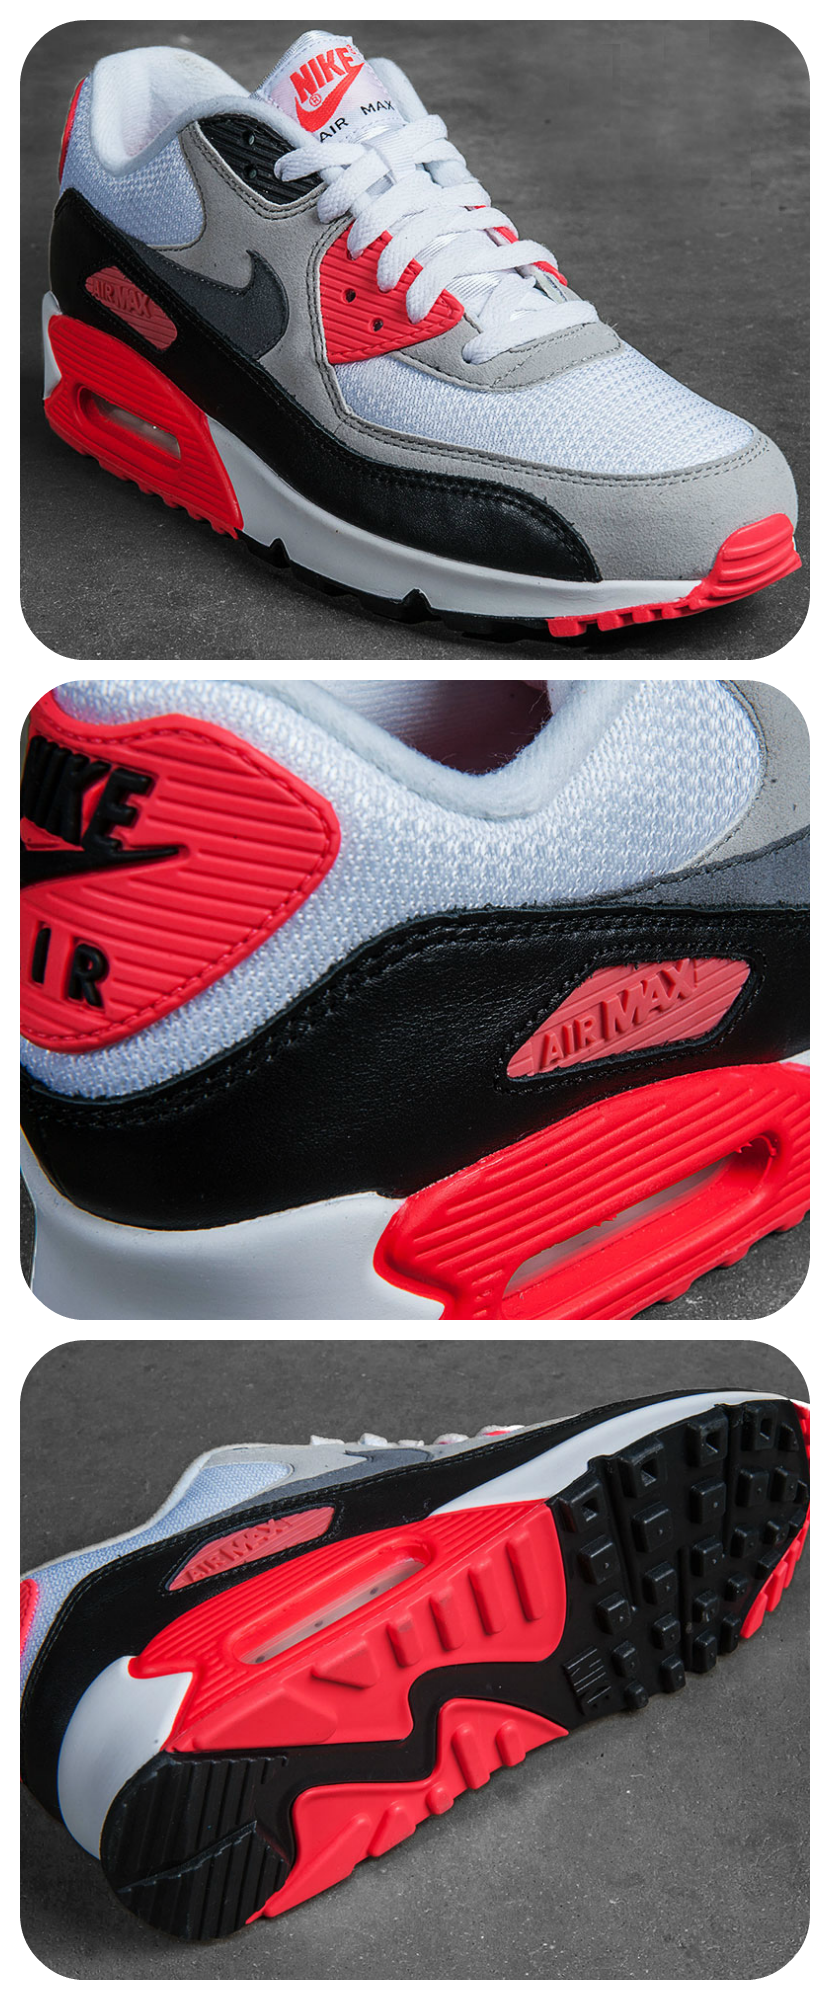 official photos 9634e c64a6 Pin by mandy on Nike Air Max 90 OG Shoes   Pinterest